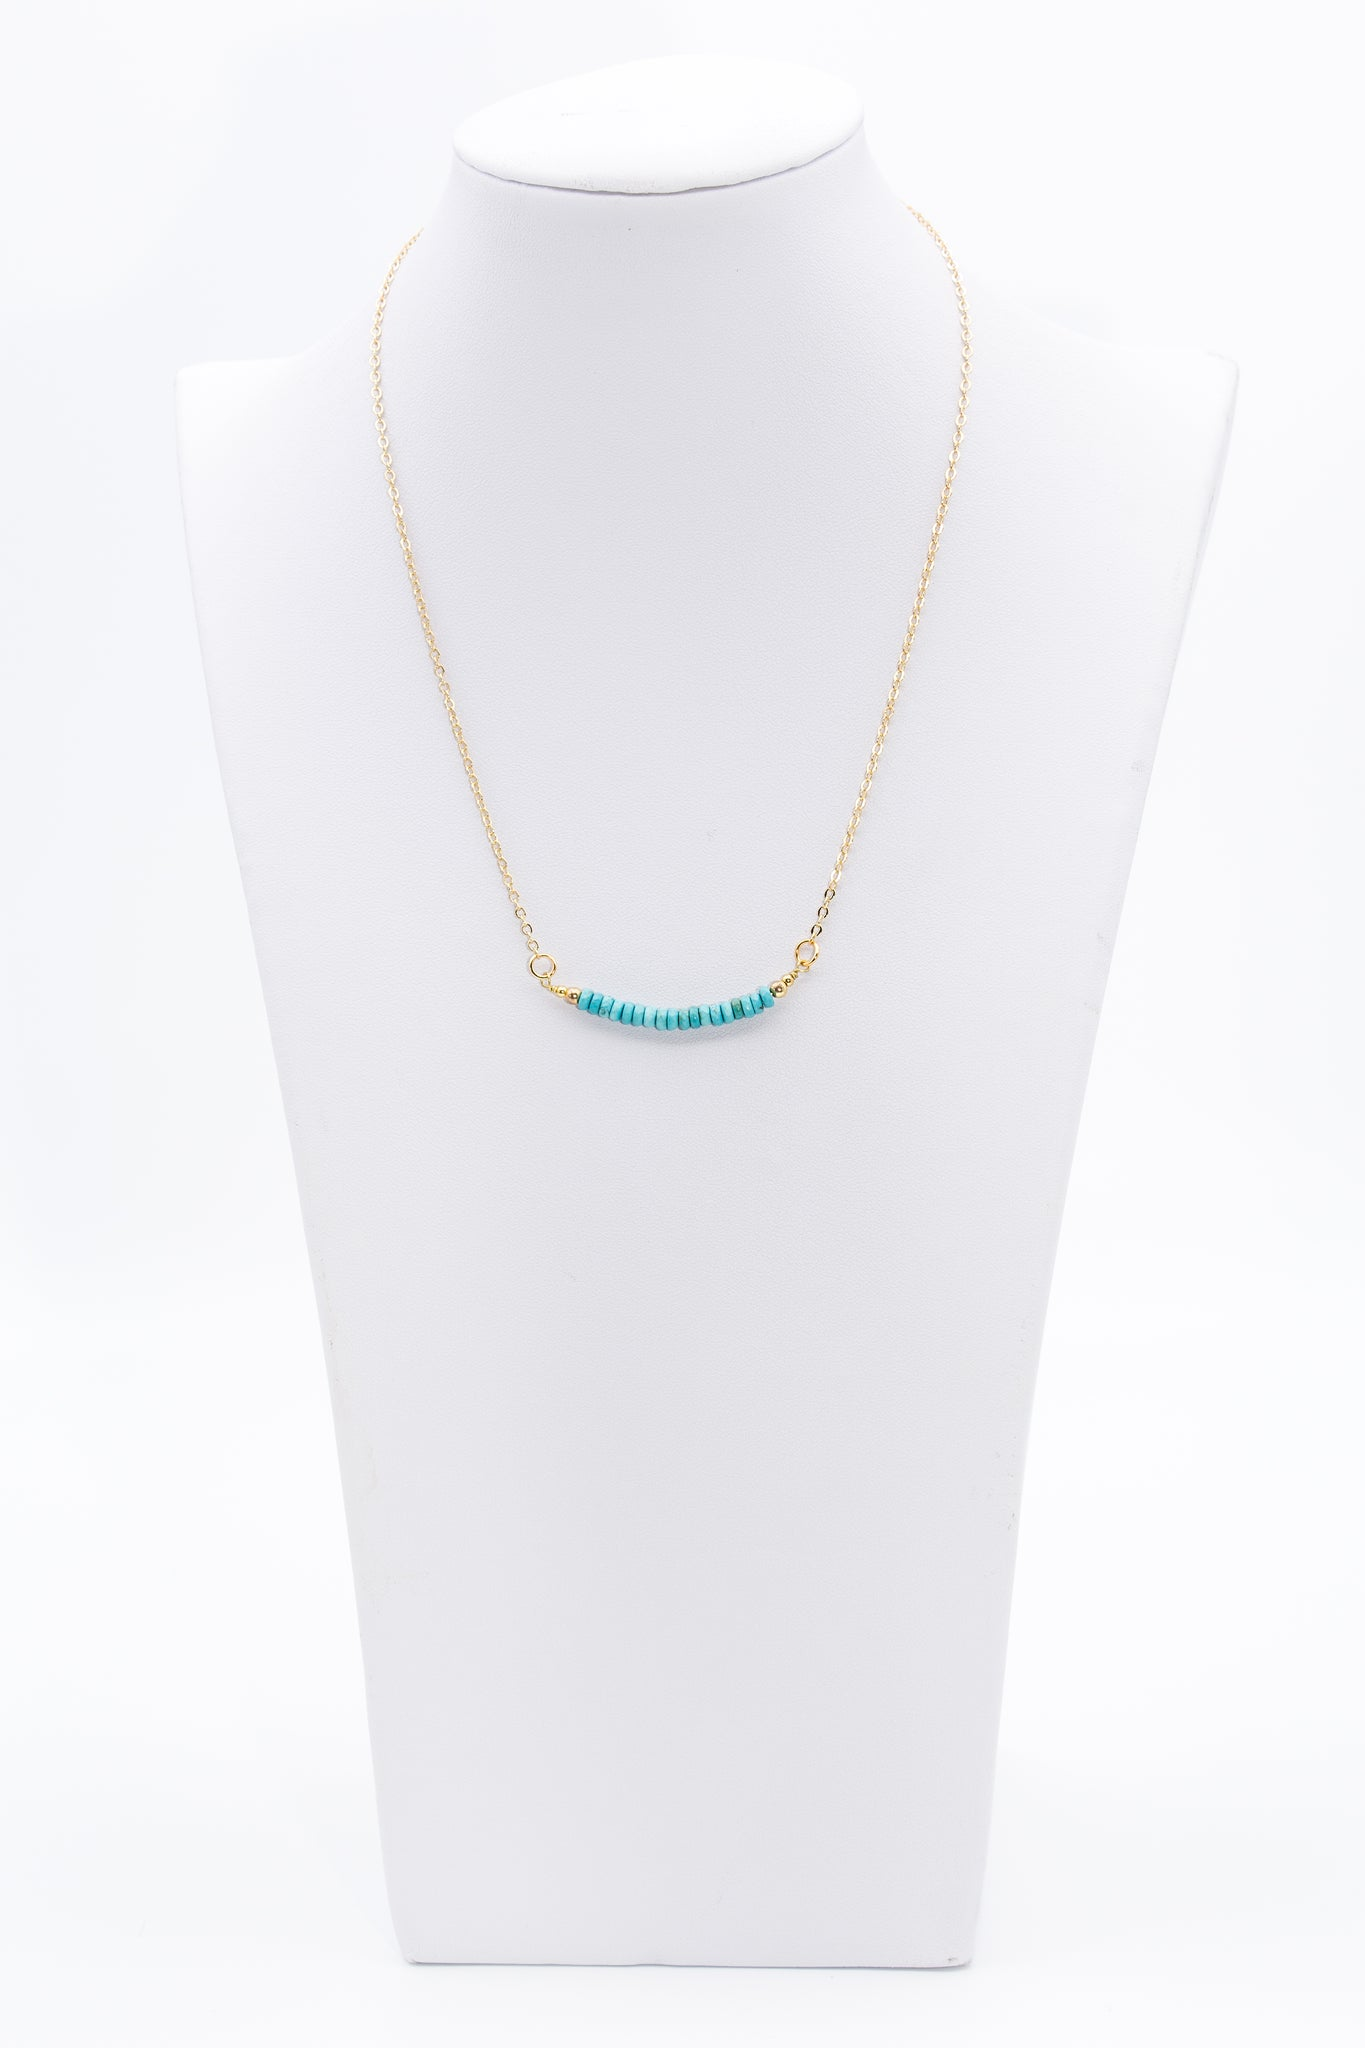 Turquoise Tube Gemstone  Beaded Bar Necklace With Gold Chain - Filosophy